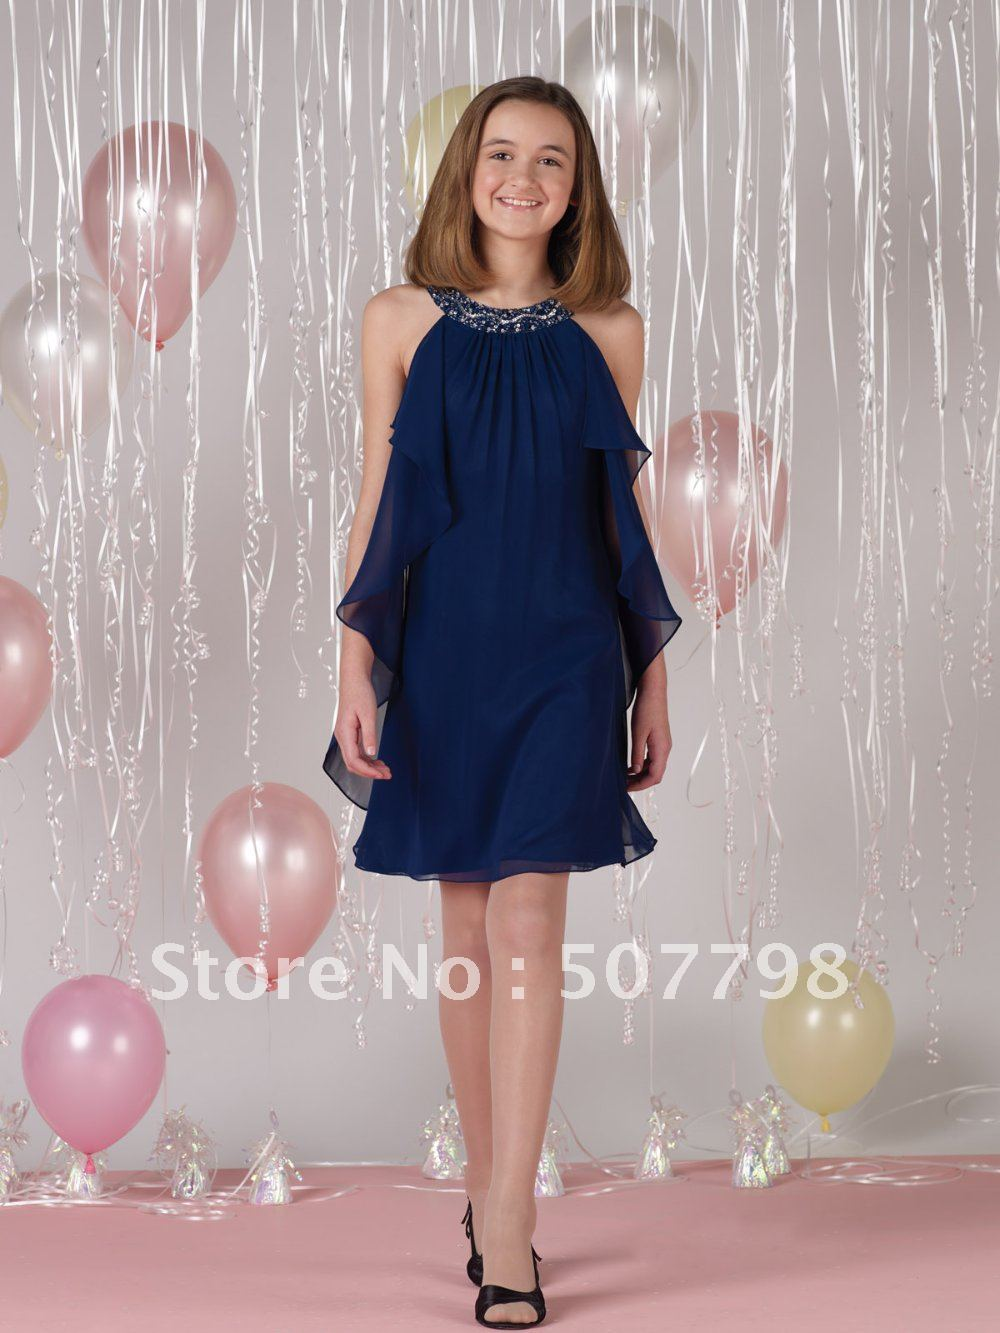 2012fall collection- halter a-line crystals flouncing side flower girl dress, special ocasions apparel in wedding party for kids